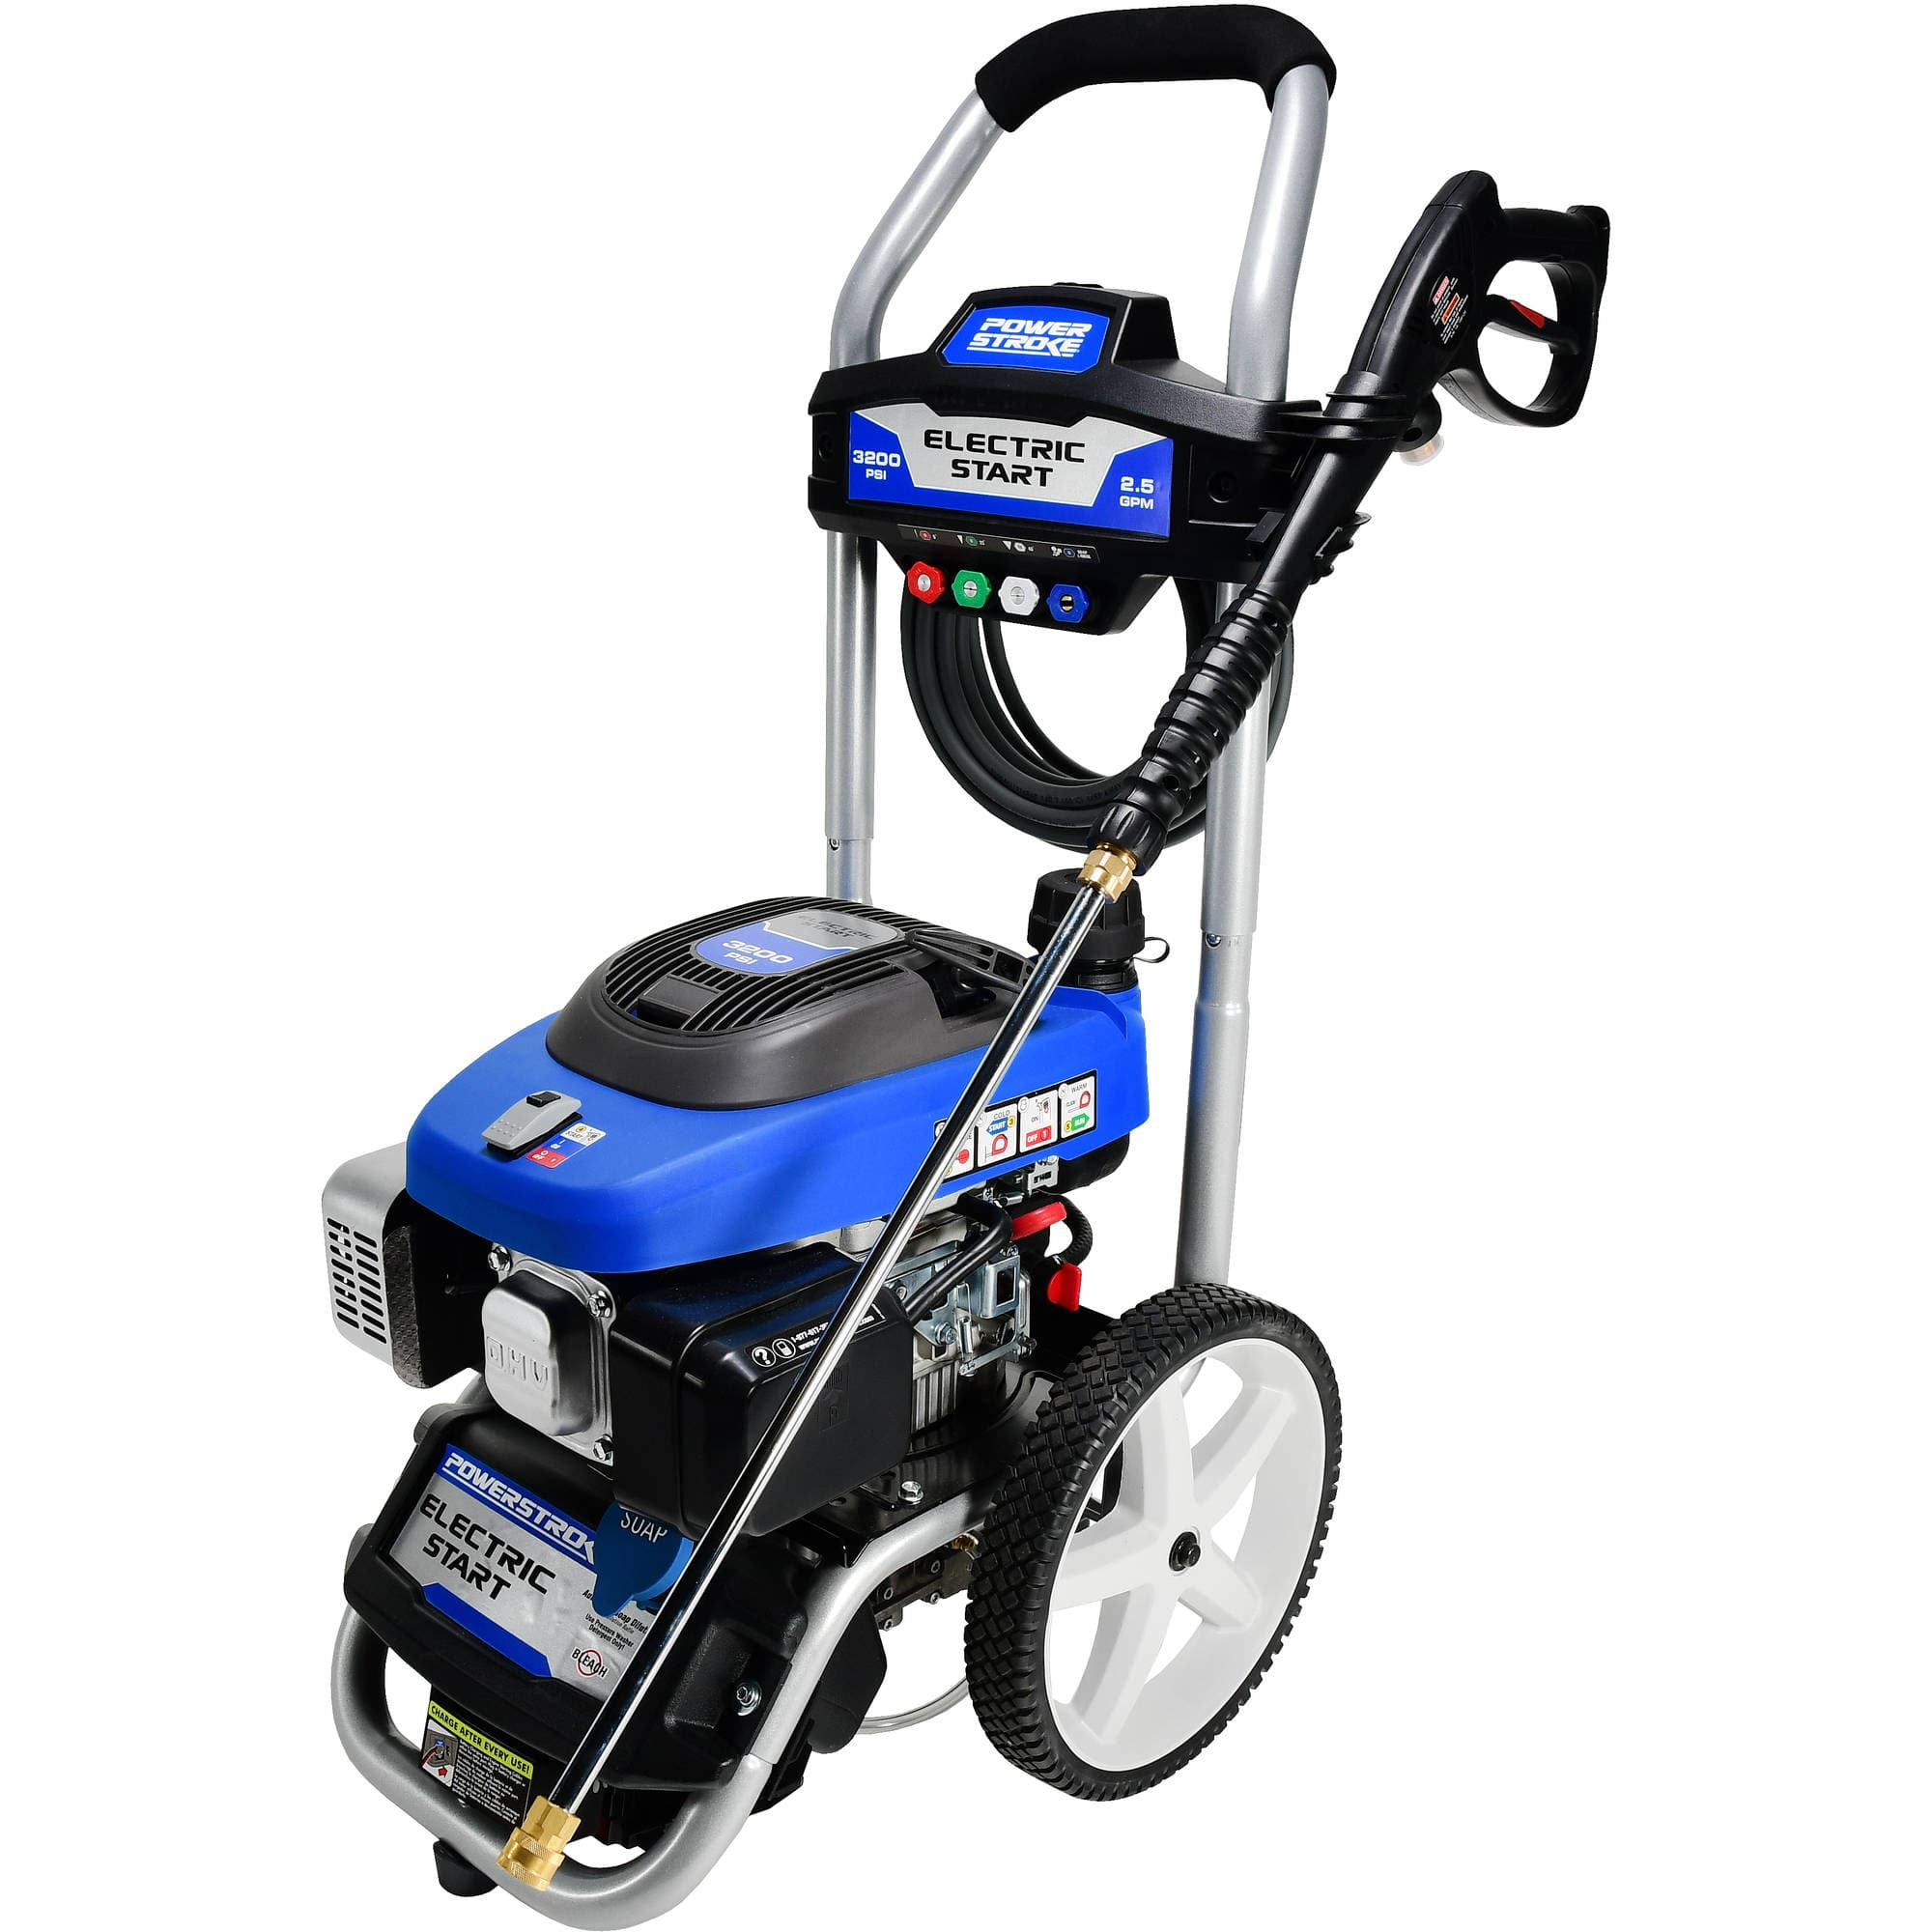 Powerstroke Electric Start 3200PSI Gas Pressure Washer - Walmart -  $79 - YMMV